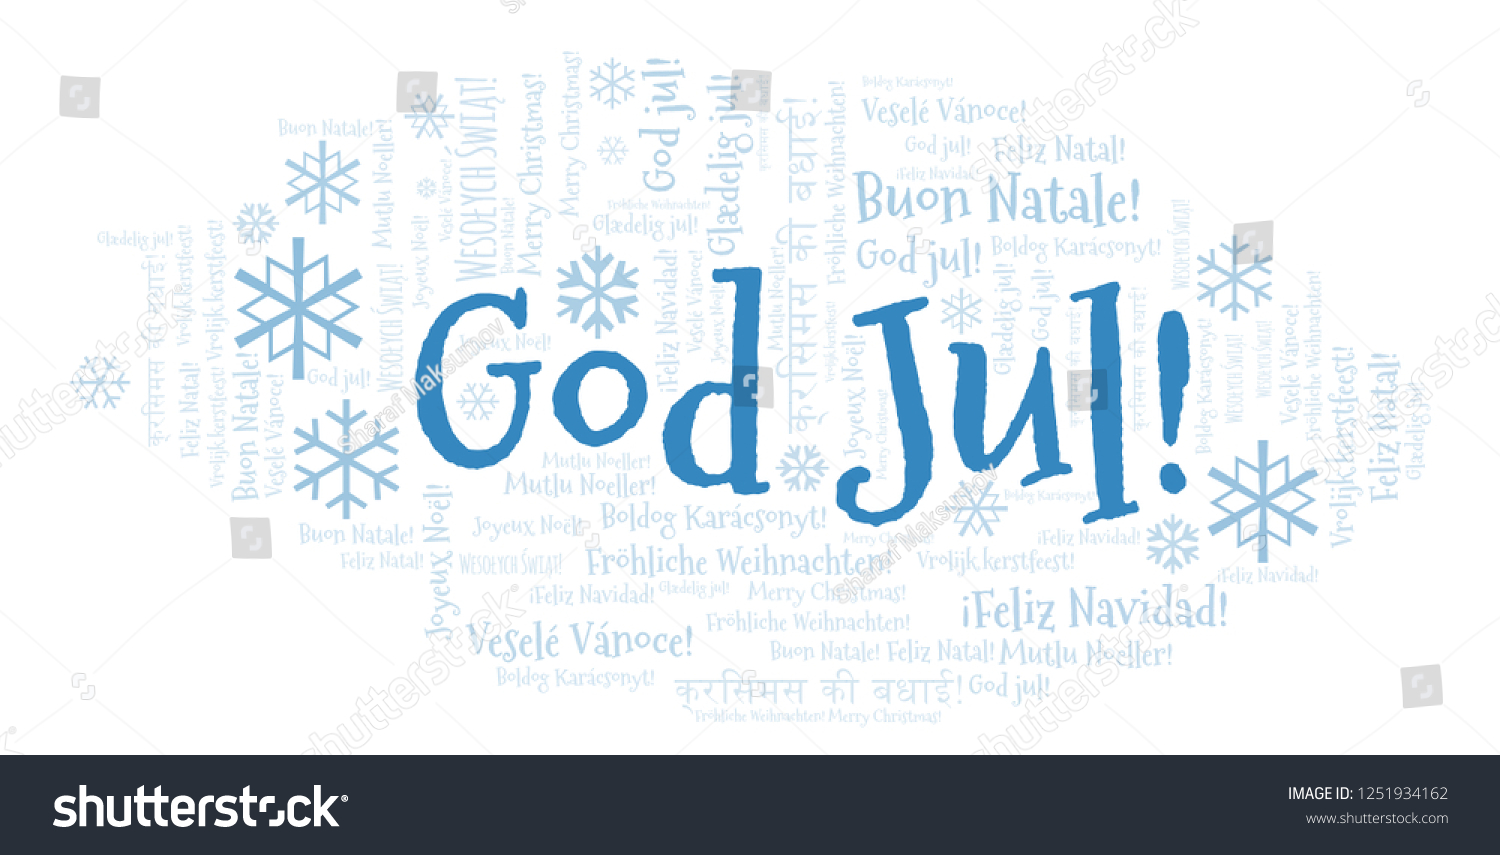 How Do You Say Merry Christmas In Swedish.God Jul Word Cloud Merry Christmas Stock Illustration 1251934162